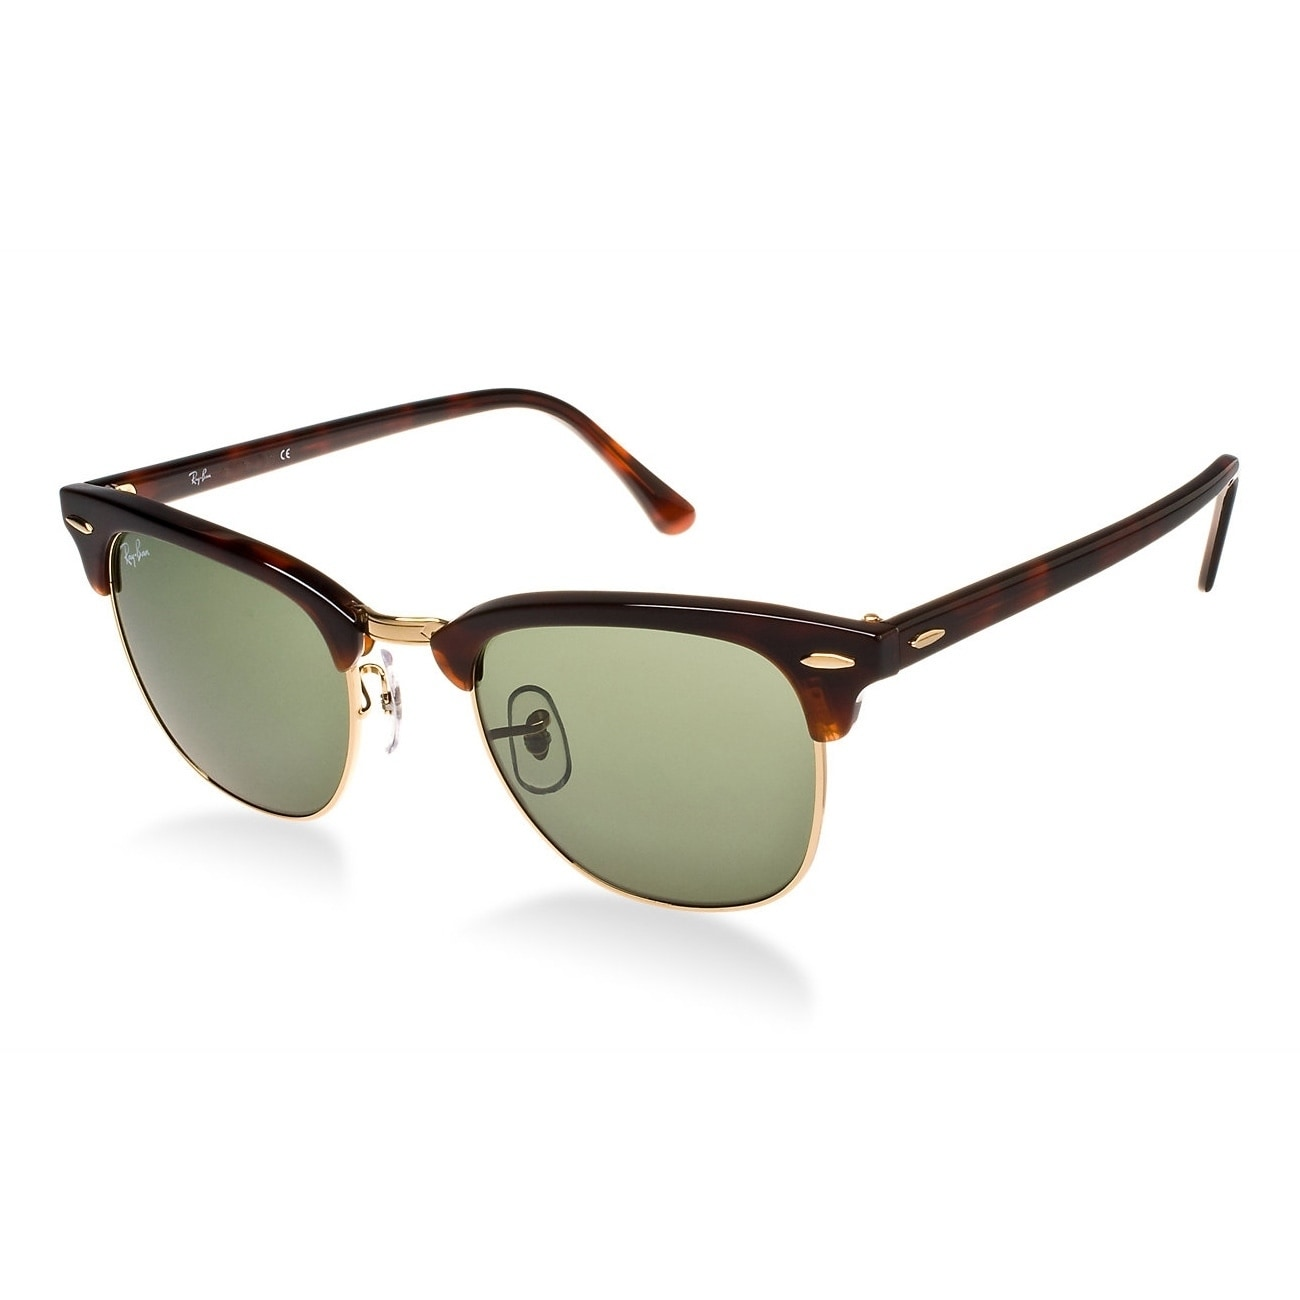 b70929f5cb Ray-Ban Men s Sunglasses